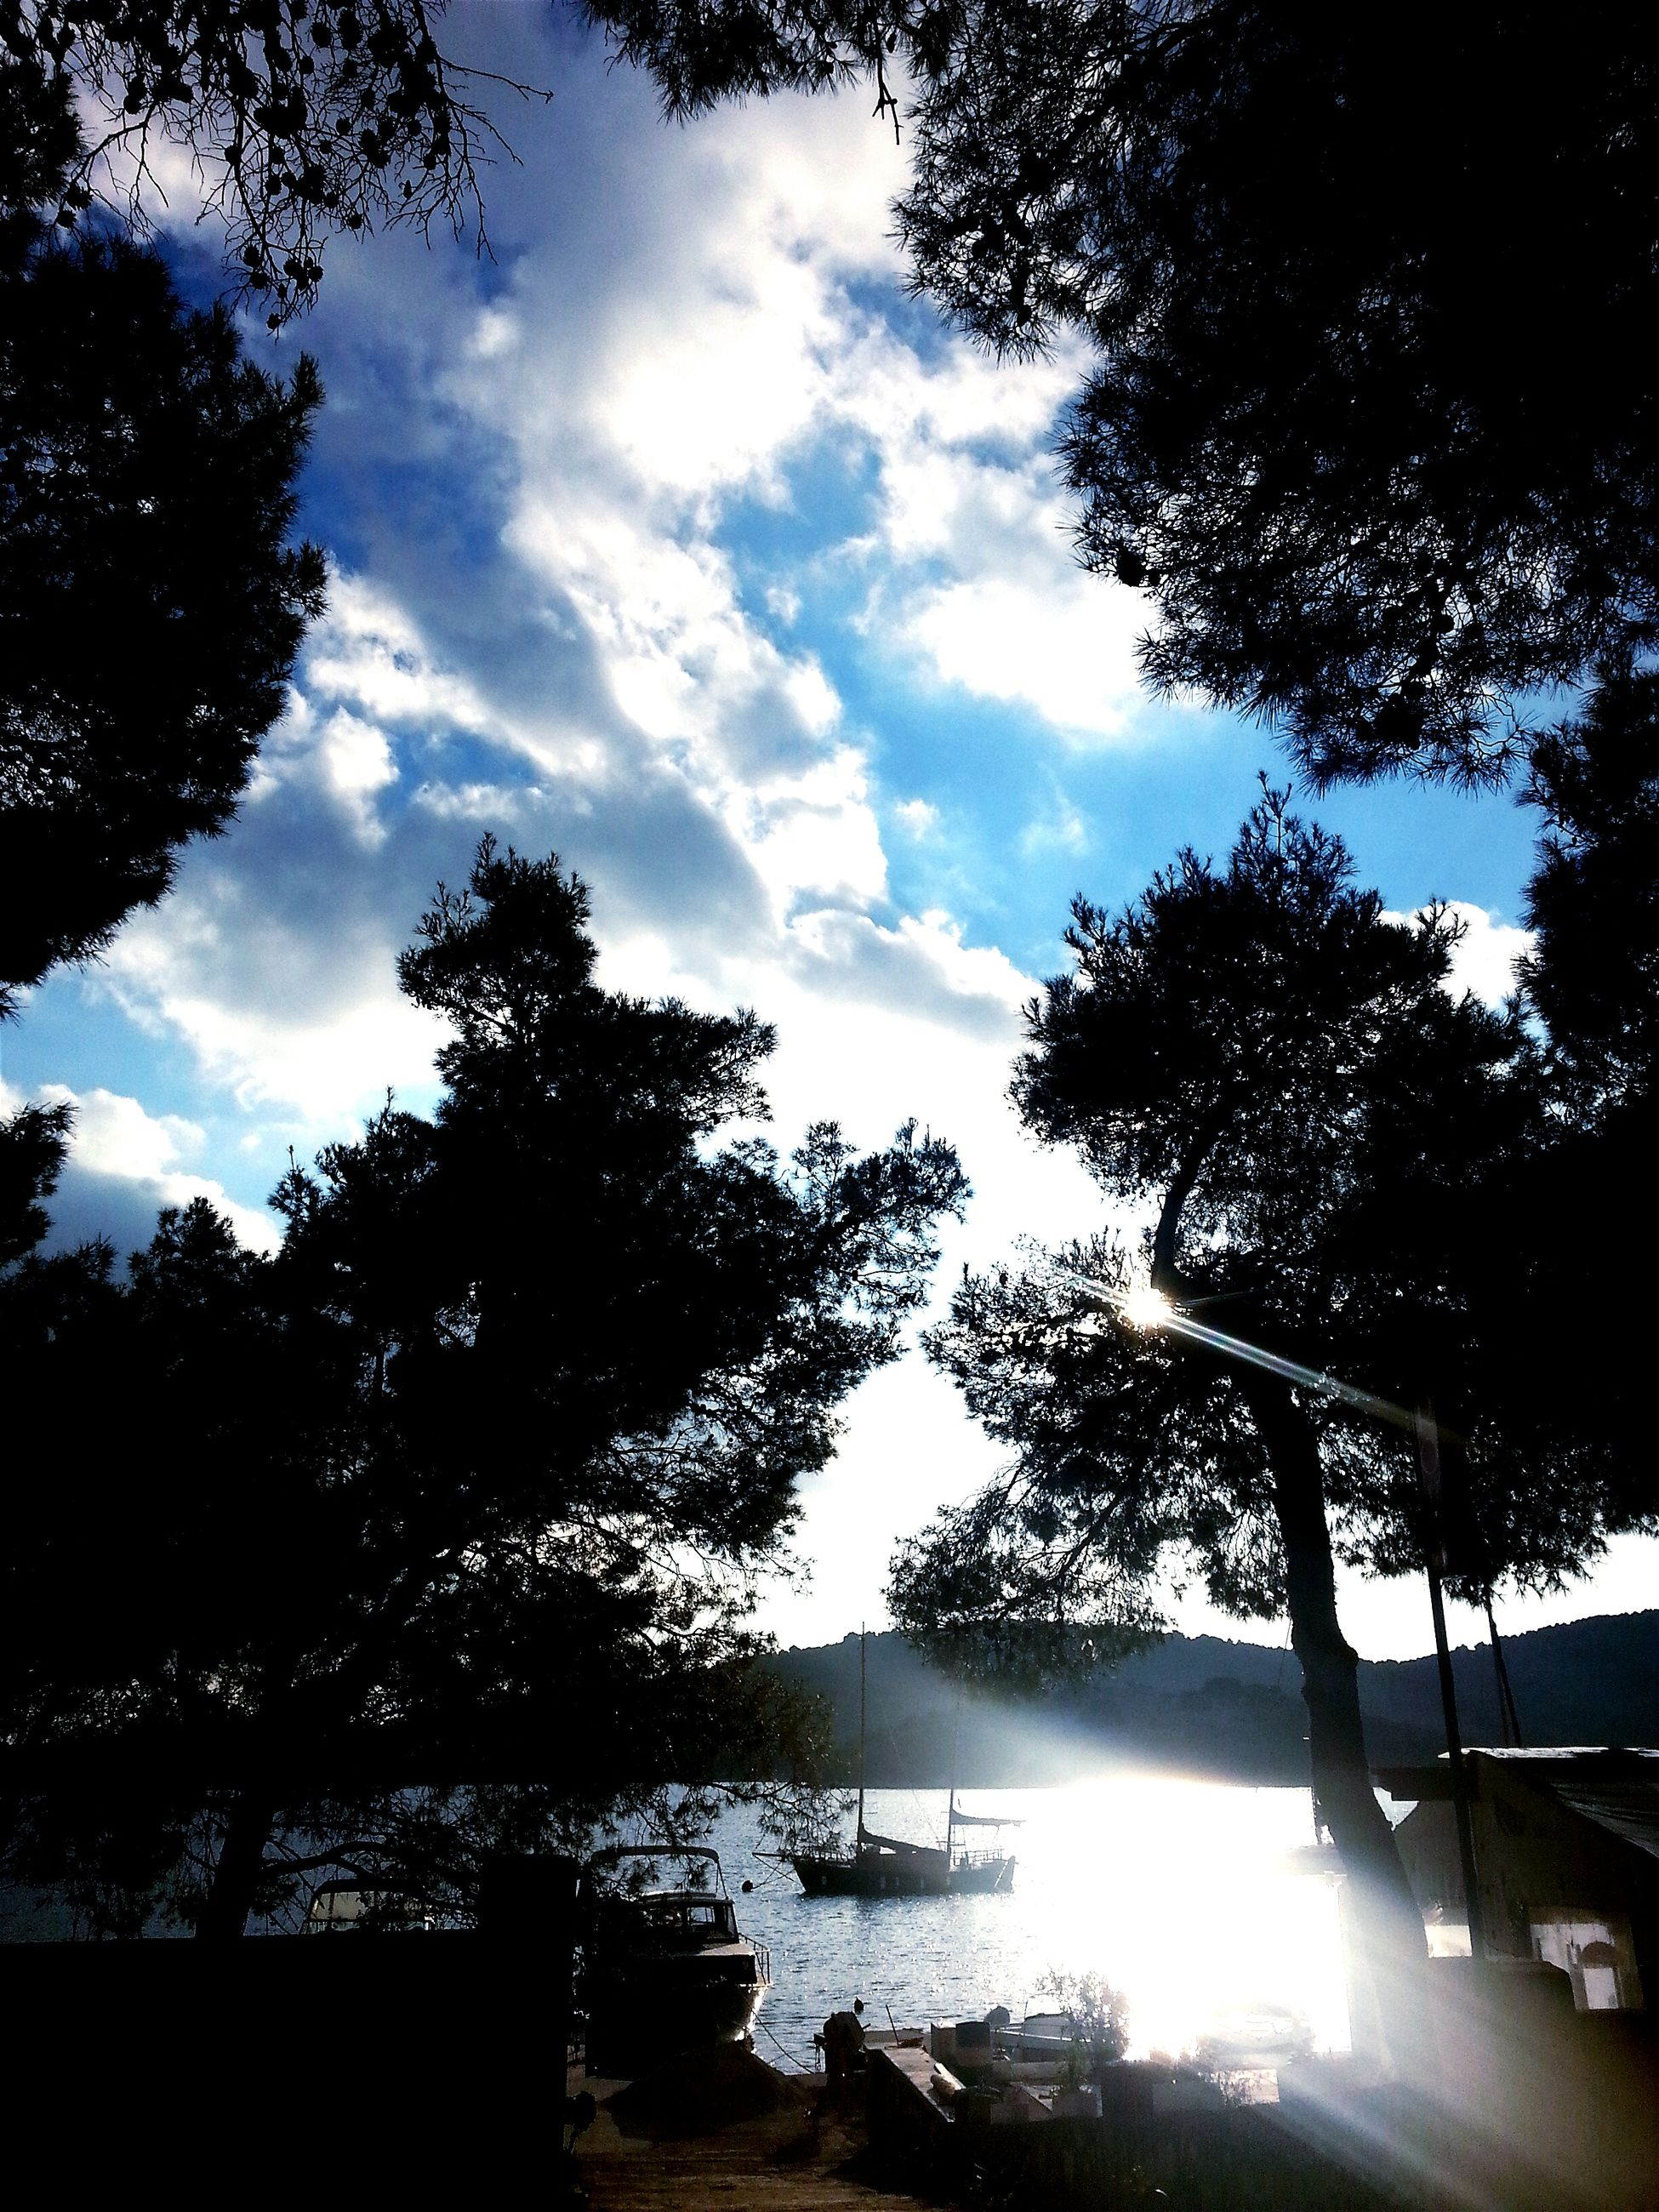 tree, sky, water, cloud - sky, sun, silhouette, sunlight, sunbeam, nature, tranquility, cloud, tranquil scene, beauty in nature, lake, nautical vessel, growth, scenics, river, cloudy, outdoors